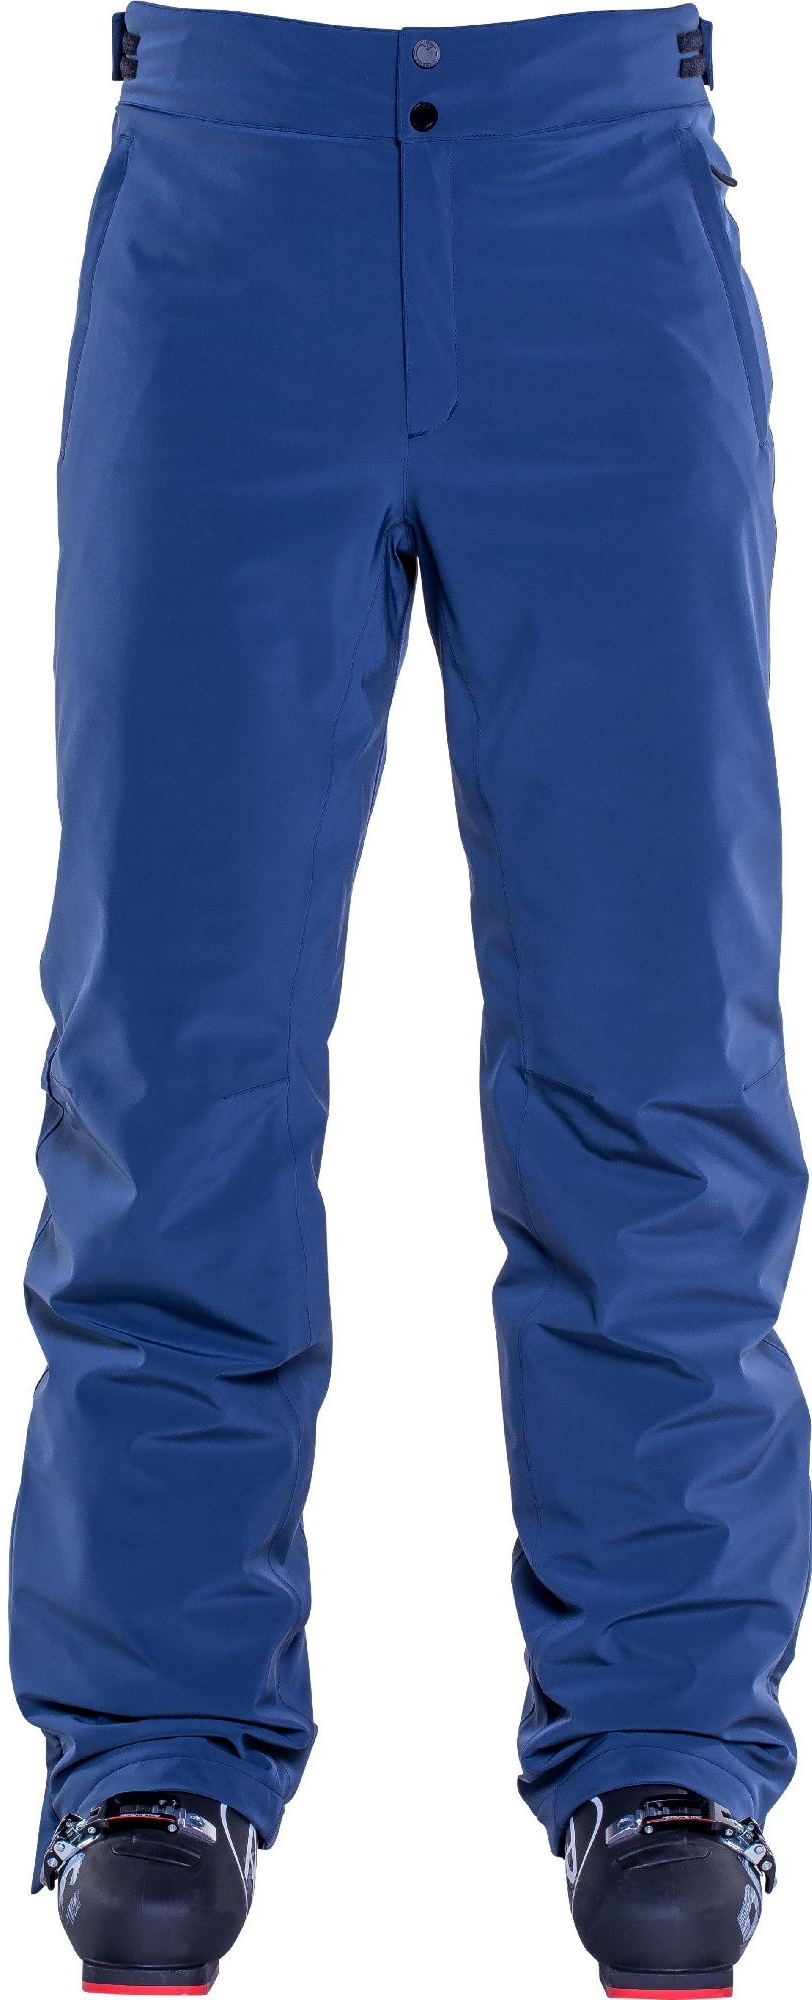 Rossignol Gravity Pants, $650